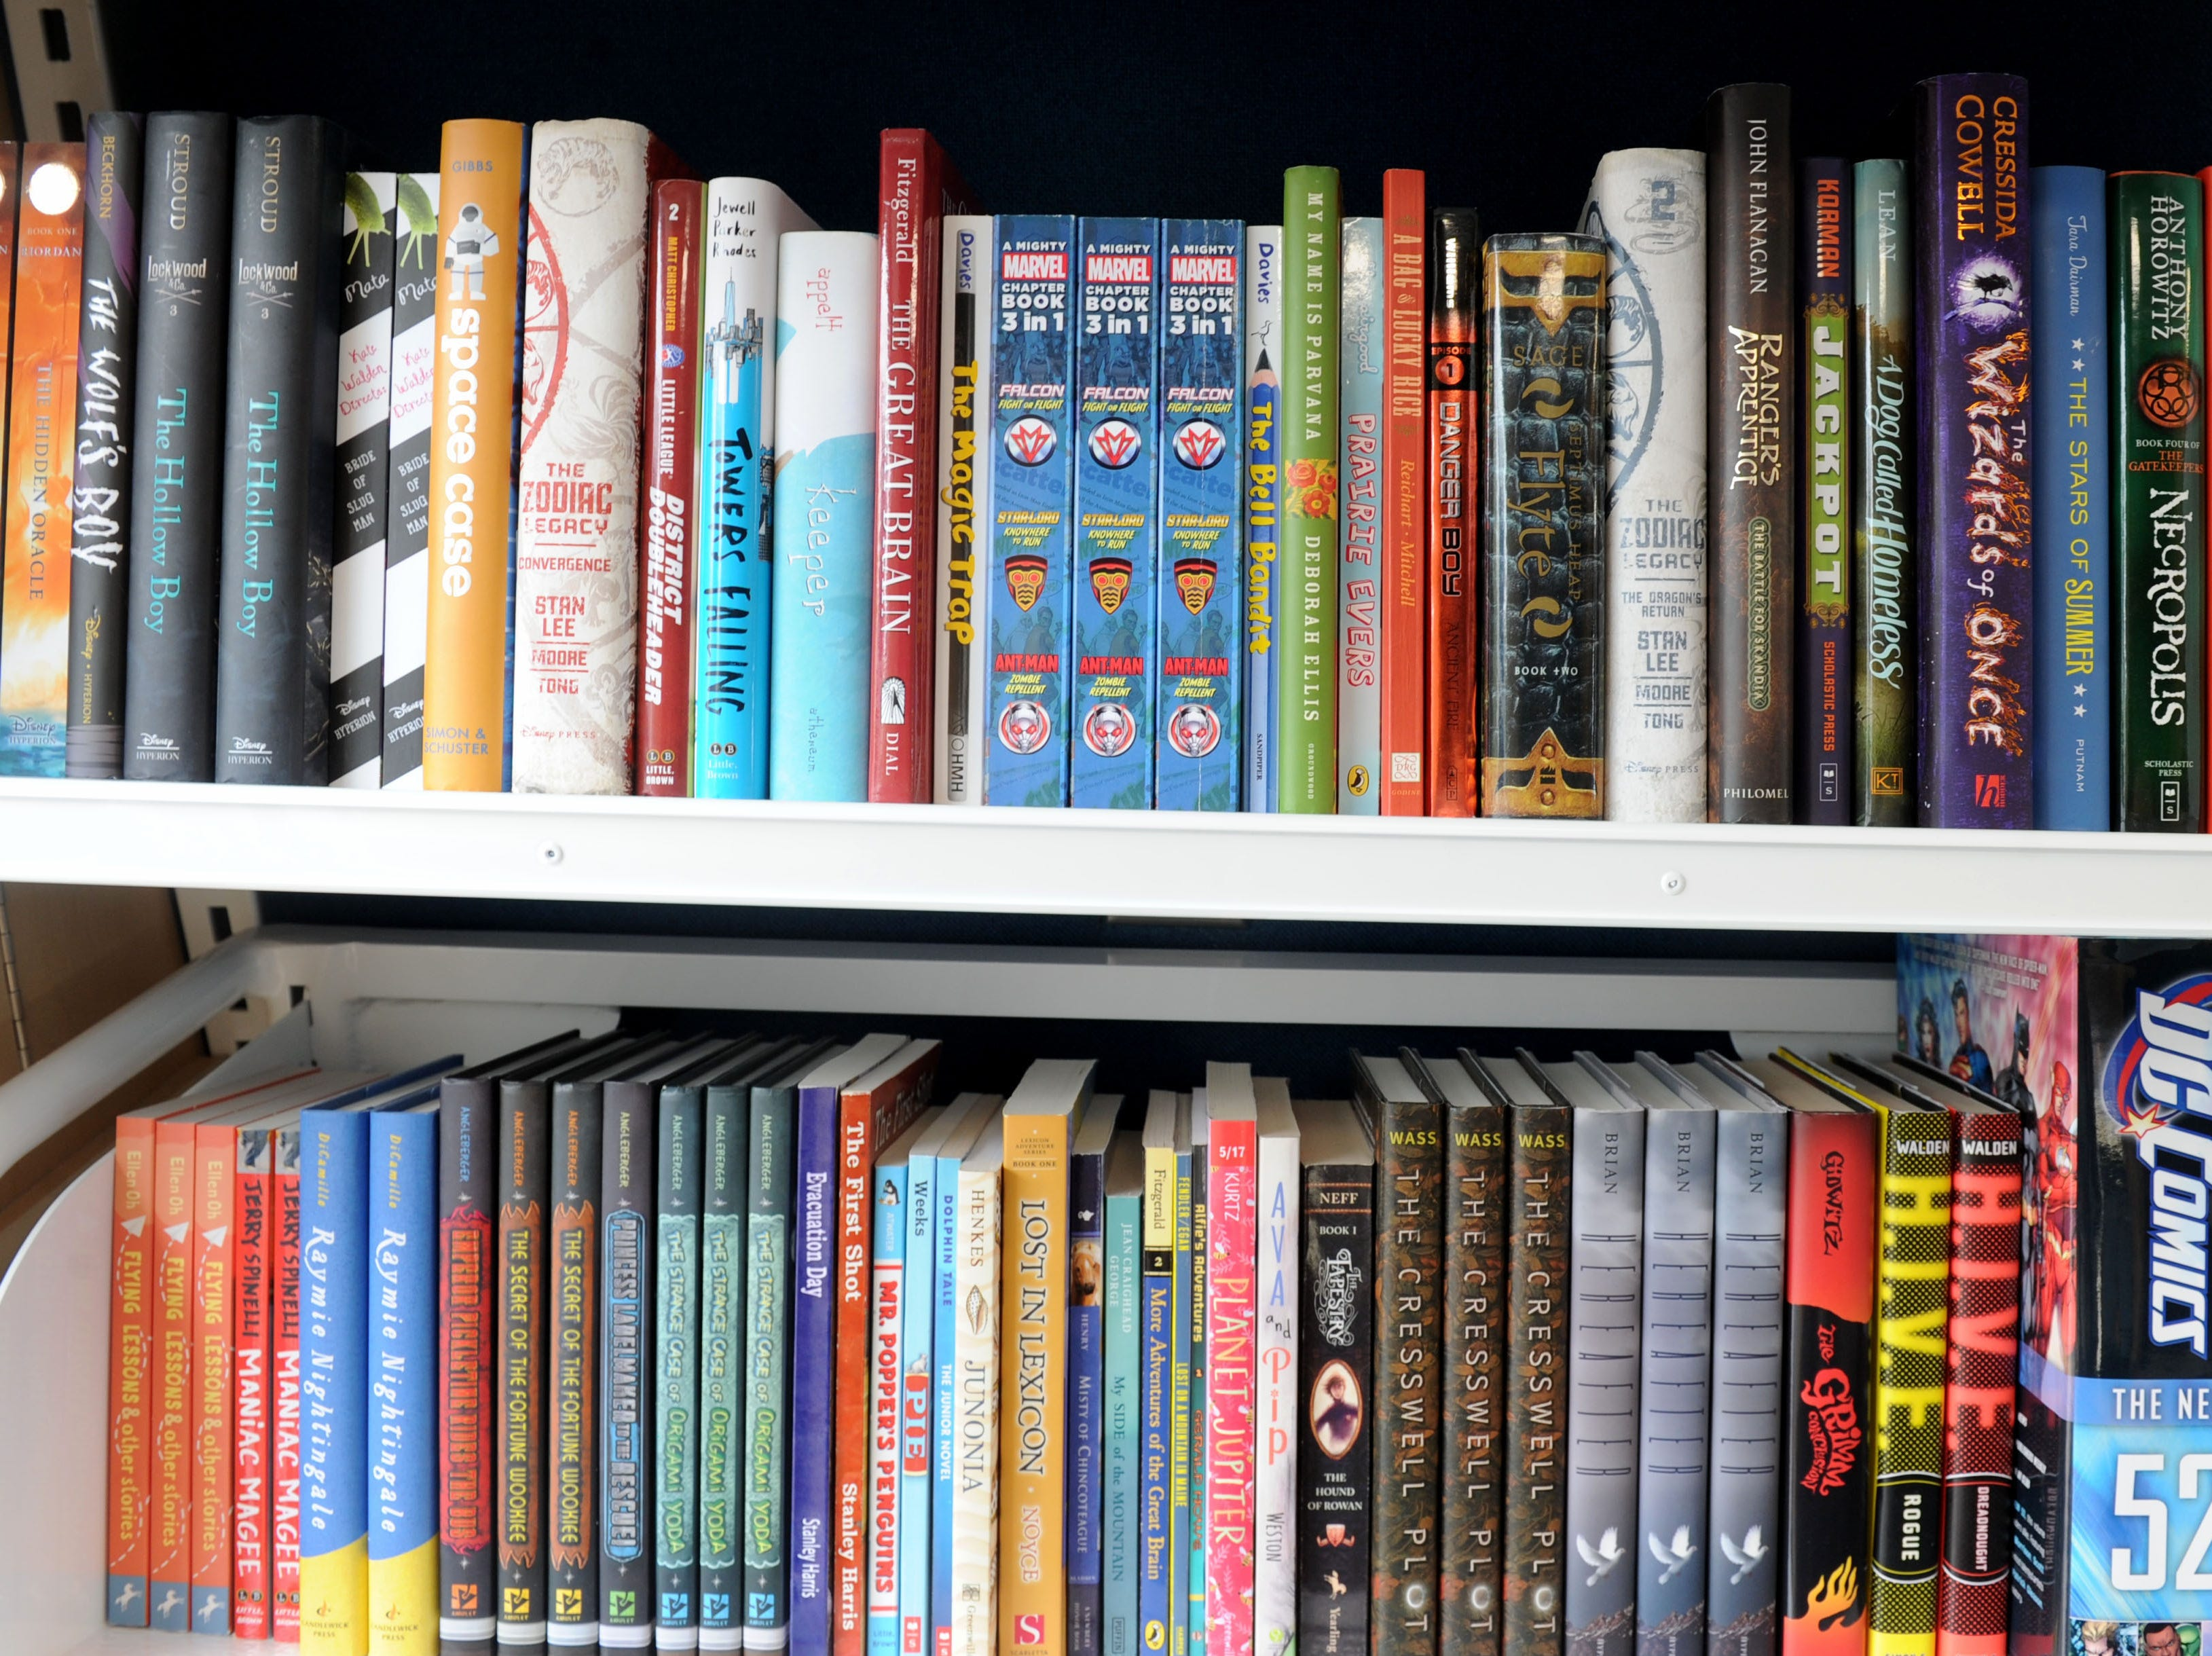 The Ventura County Library's new mobile library is a 26-foot, fuel-efficient vehicle stocked with many of the same services found in a traditional library, including popular materials in multiple formats.